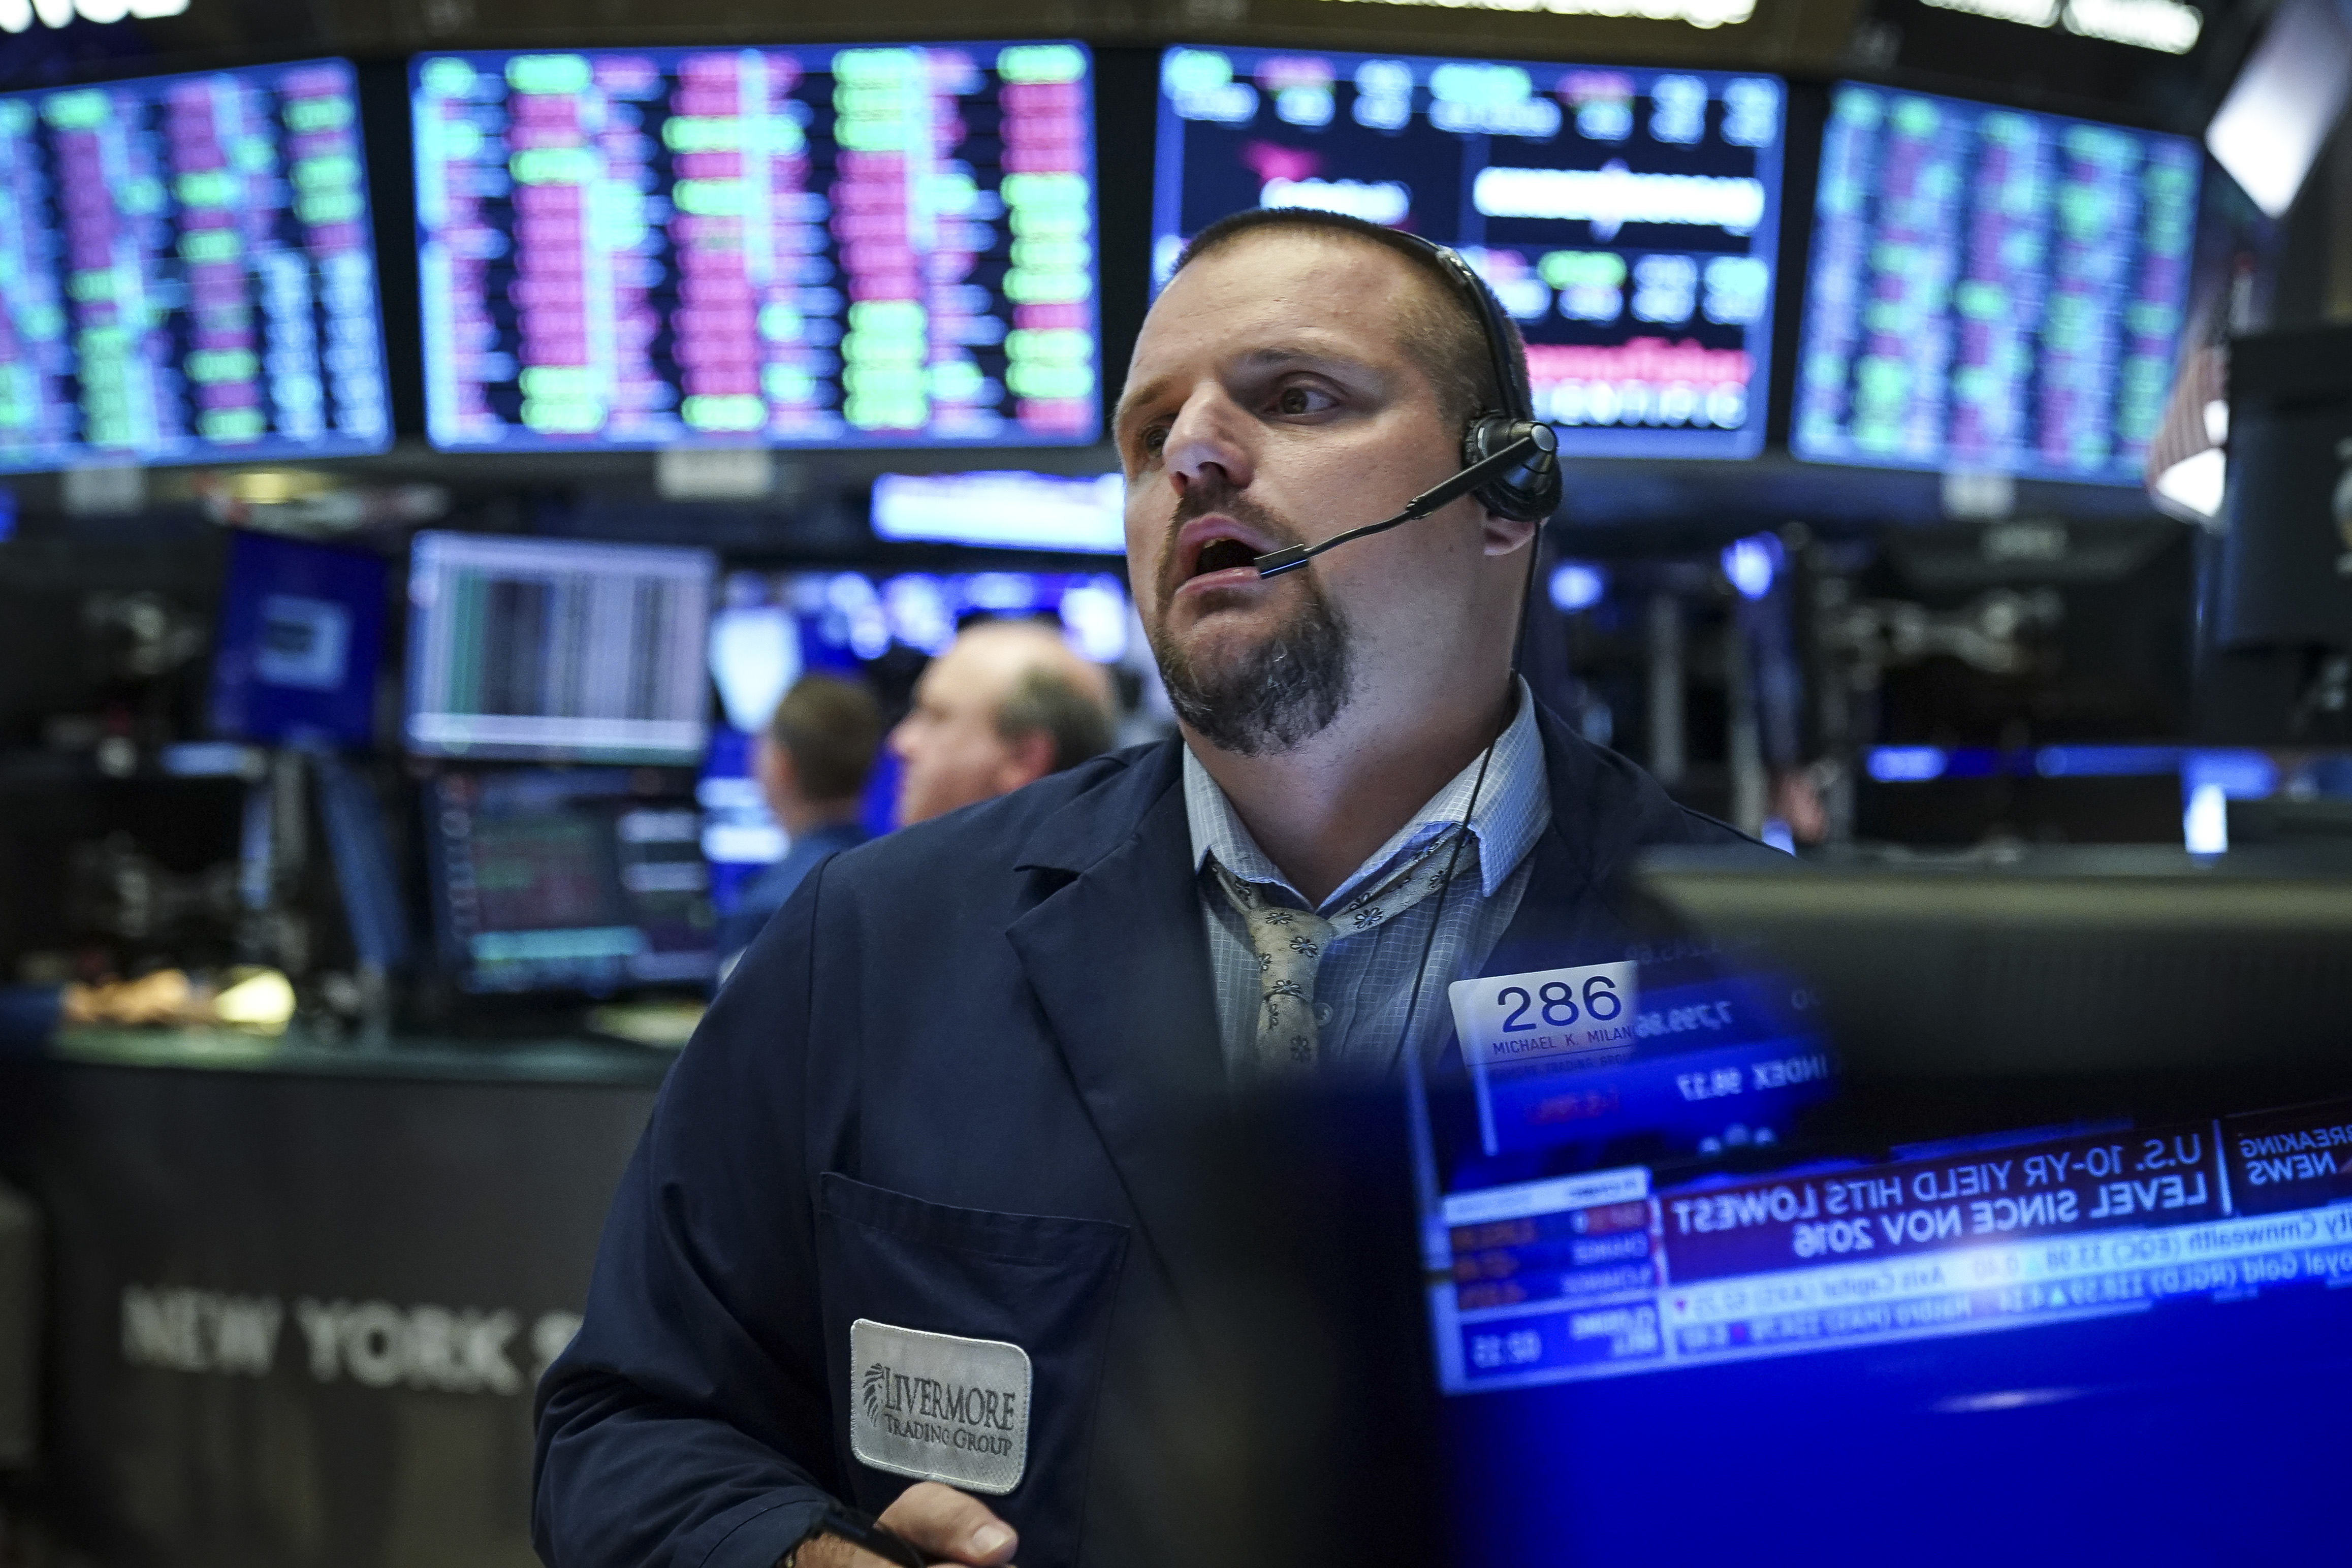 NEW YORK, NY - AUGUST 1: Traders and financial professionals work ahead of the closing bell on the floor of the New York Stock Exchange (NYSE) on August 1, 2019 in New York City. Following large gains earlier in the day, U.S. markets dropped sharply after an afternoon tweet by U.S. President Donald Trump announcing his plans to impose a 10 percent tariff on an additional $300 billion worth of Chinese imports. His announcement said the new tariffs will take effect on September 1. (Photo by Drew Angerer/Getty Images)